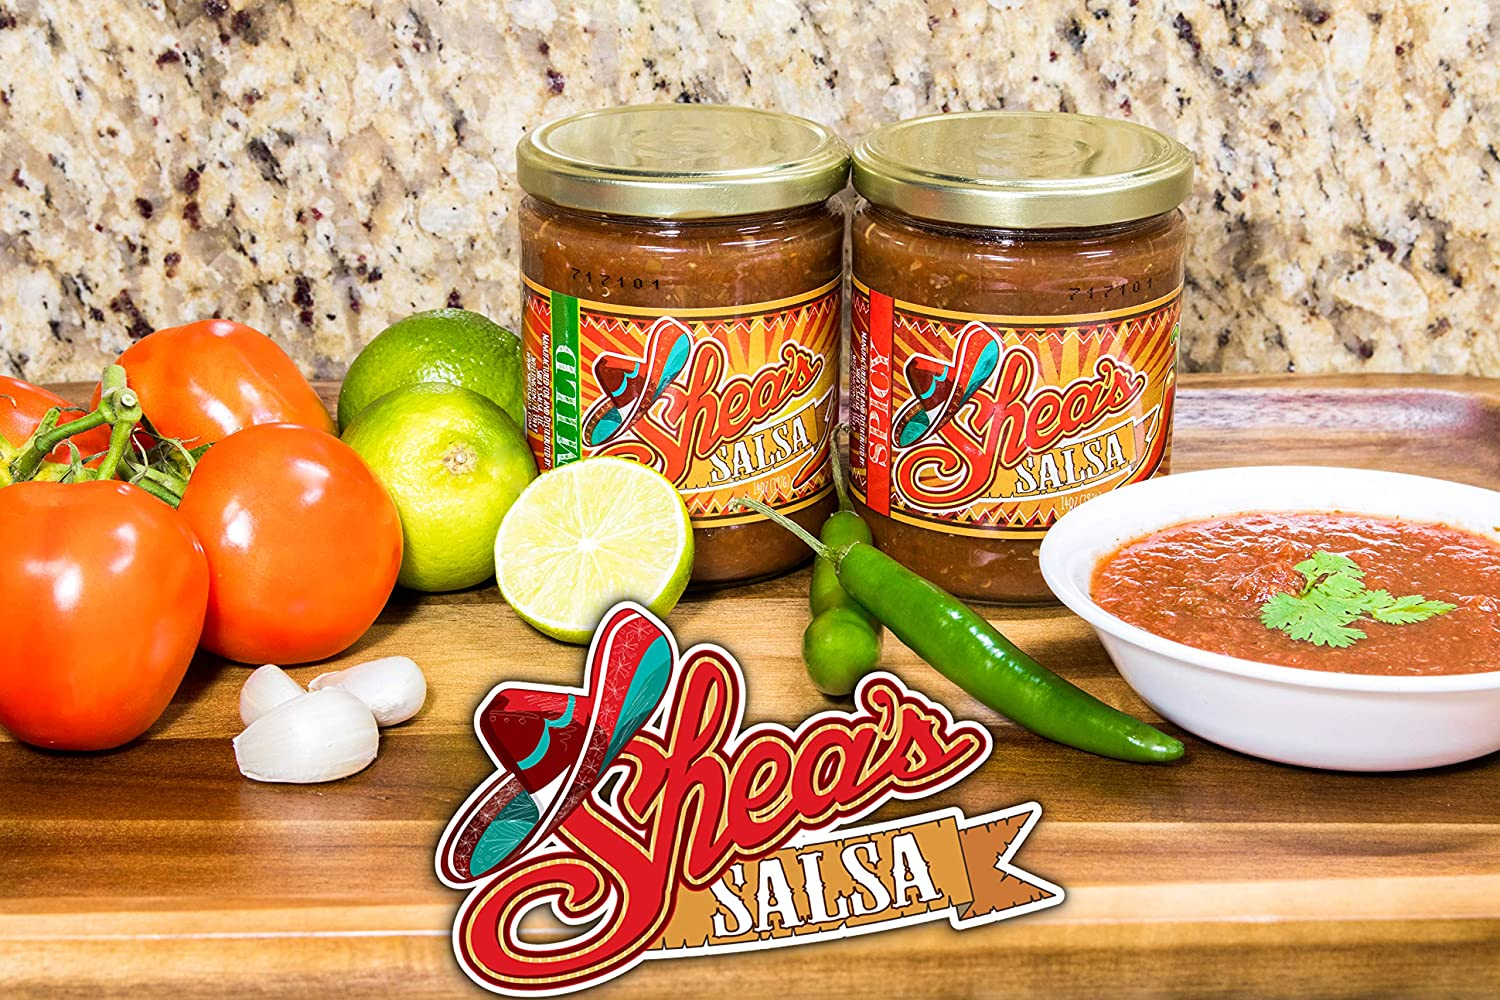 Amazon.com: Sheas Salsa - The Unapologetically Addictive Dip! Authentic MILD Salsa for Mexican Dishes, Dips for Tostitos Corn Chip or Even Sauce On Grilled ...